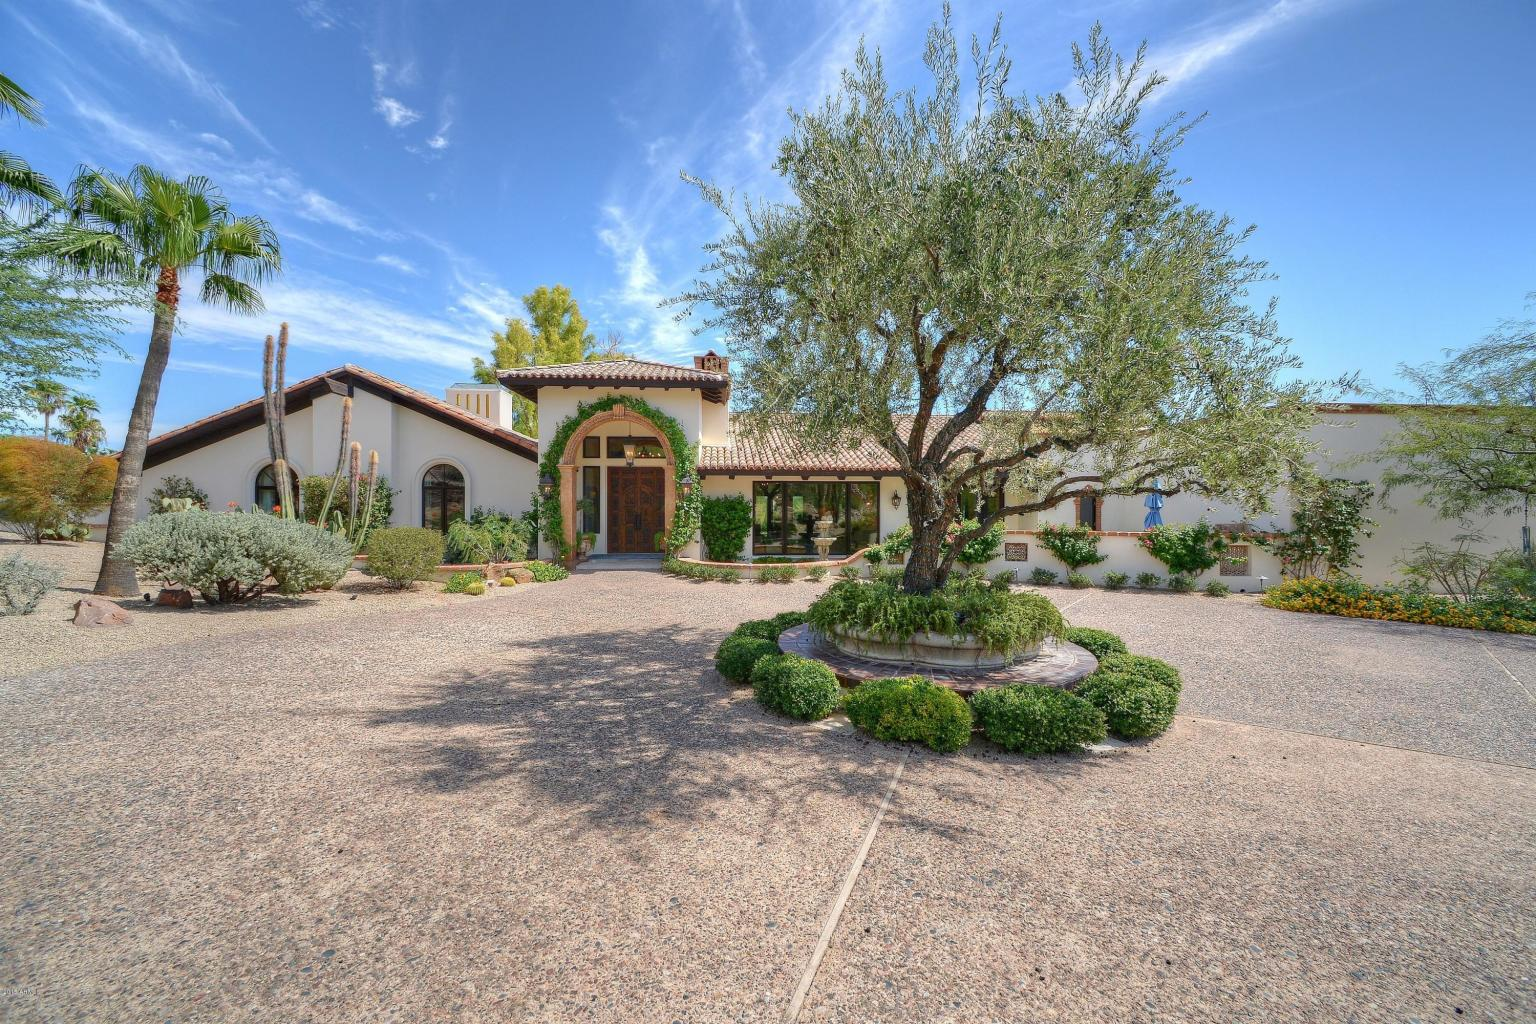 7901 N 47th St, Paradise Valley | $2,240,000